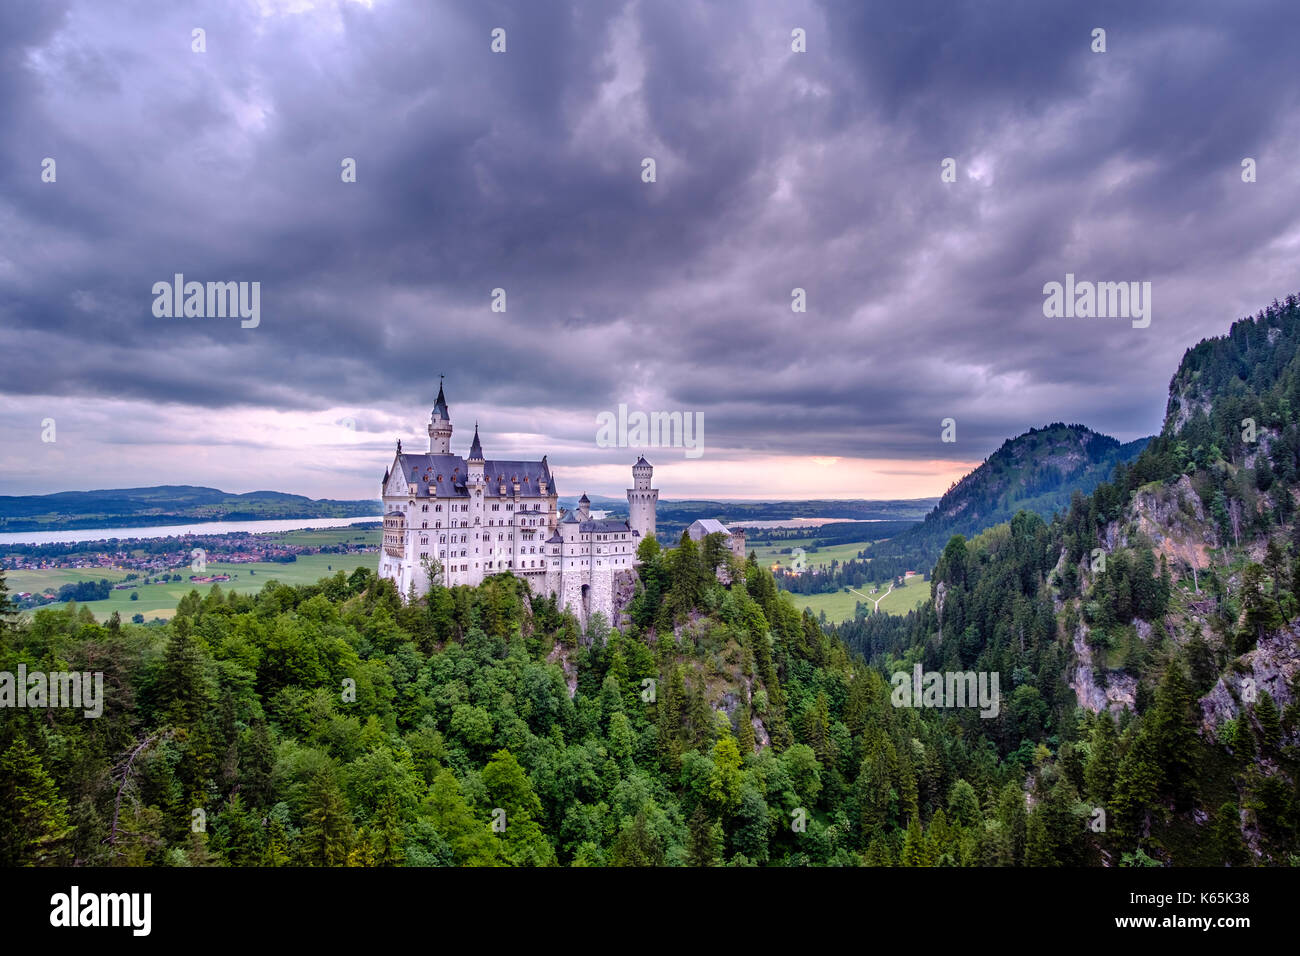 Neuschwanstein Castle at sunrise, seen from the bridge Marienbrücke, built high above the Pöllat Gorge - Stock Image